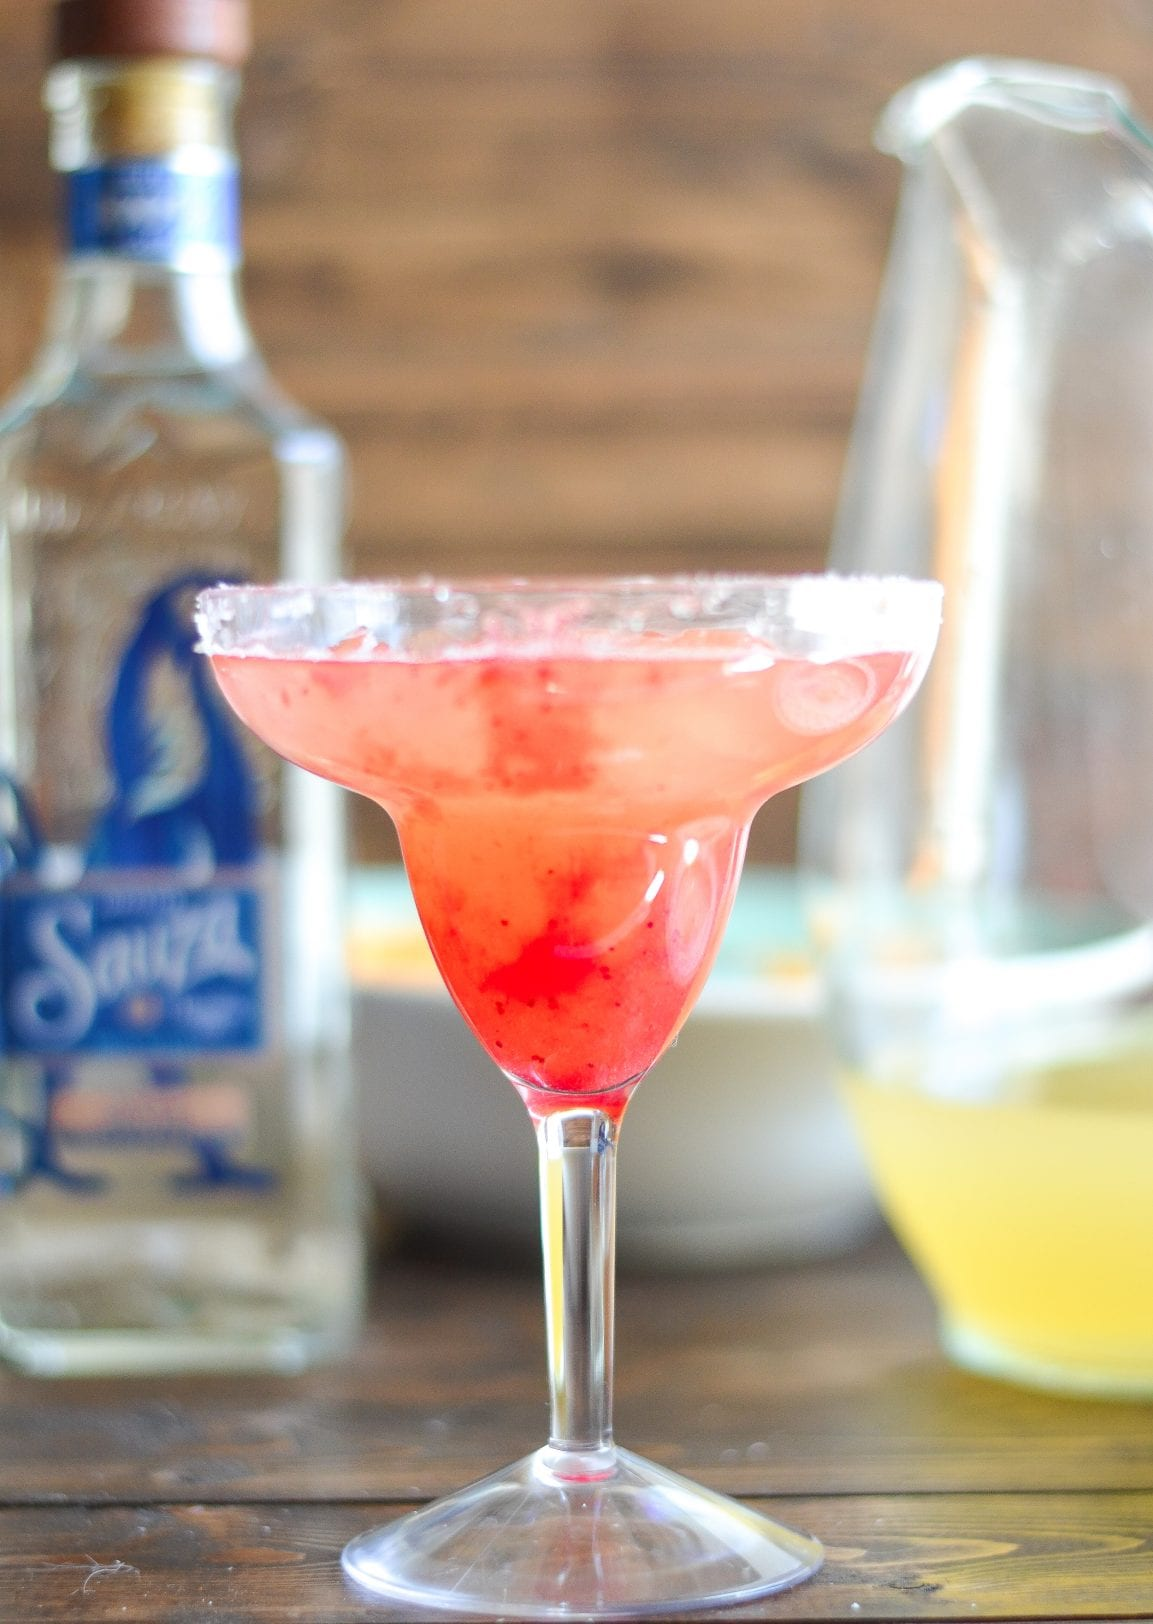 Sauza® Classic Margaritas with Strawberry Rhubarb Puree